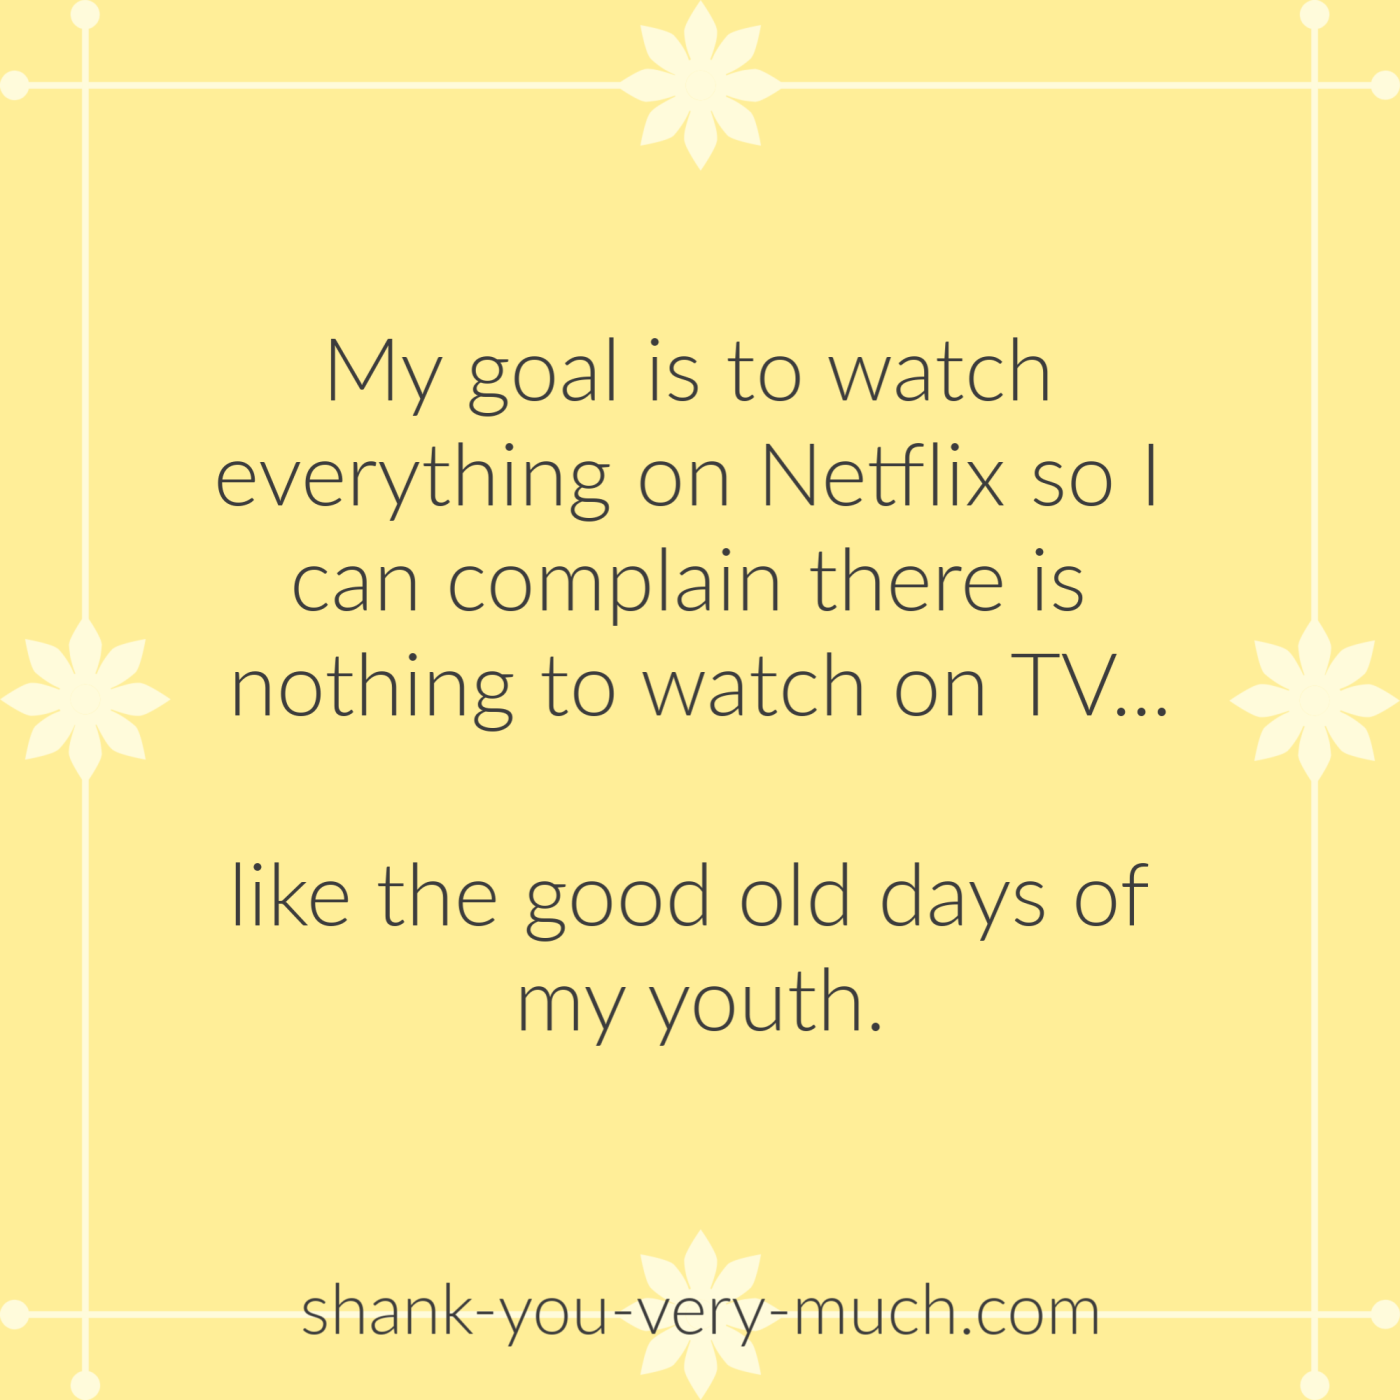 My goal is to watch everything on Netflix so I can complain there is nothing to watch on tv... like the good old days of my youth.